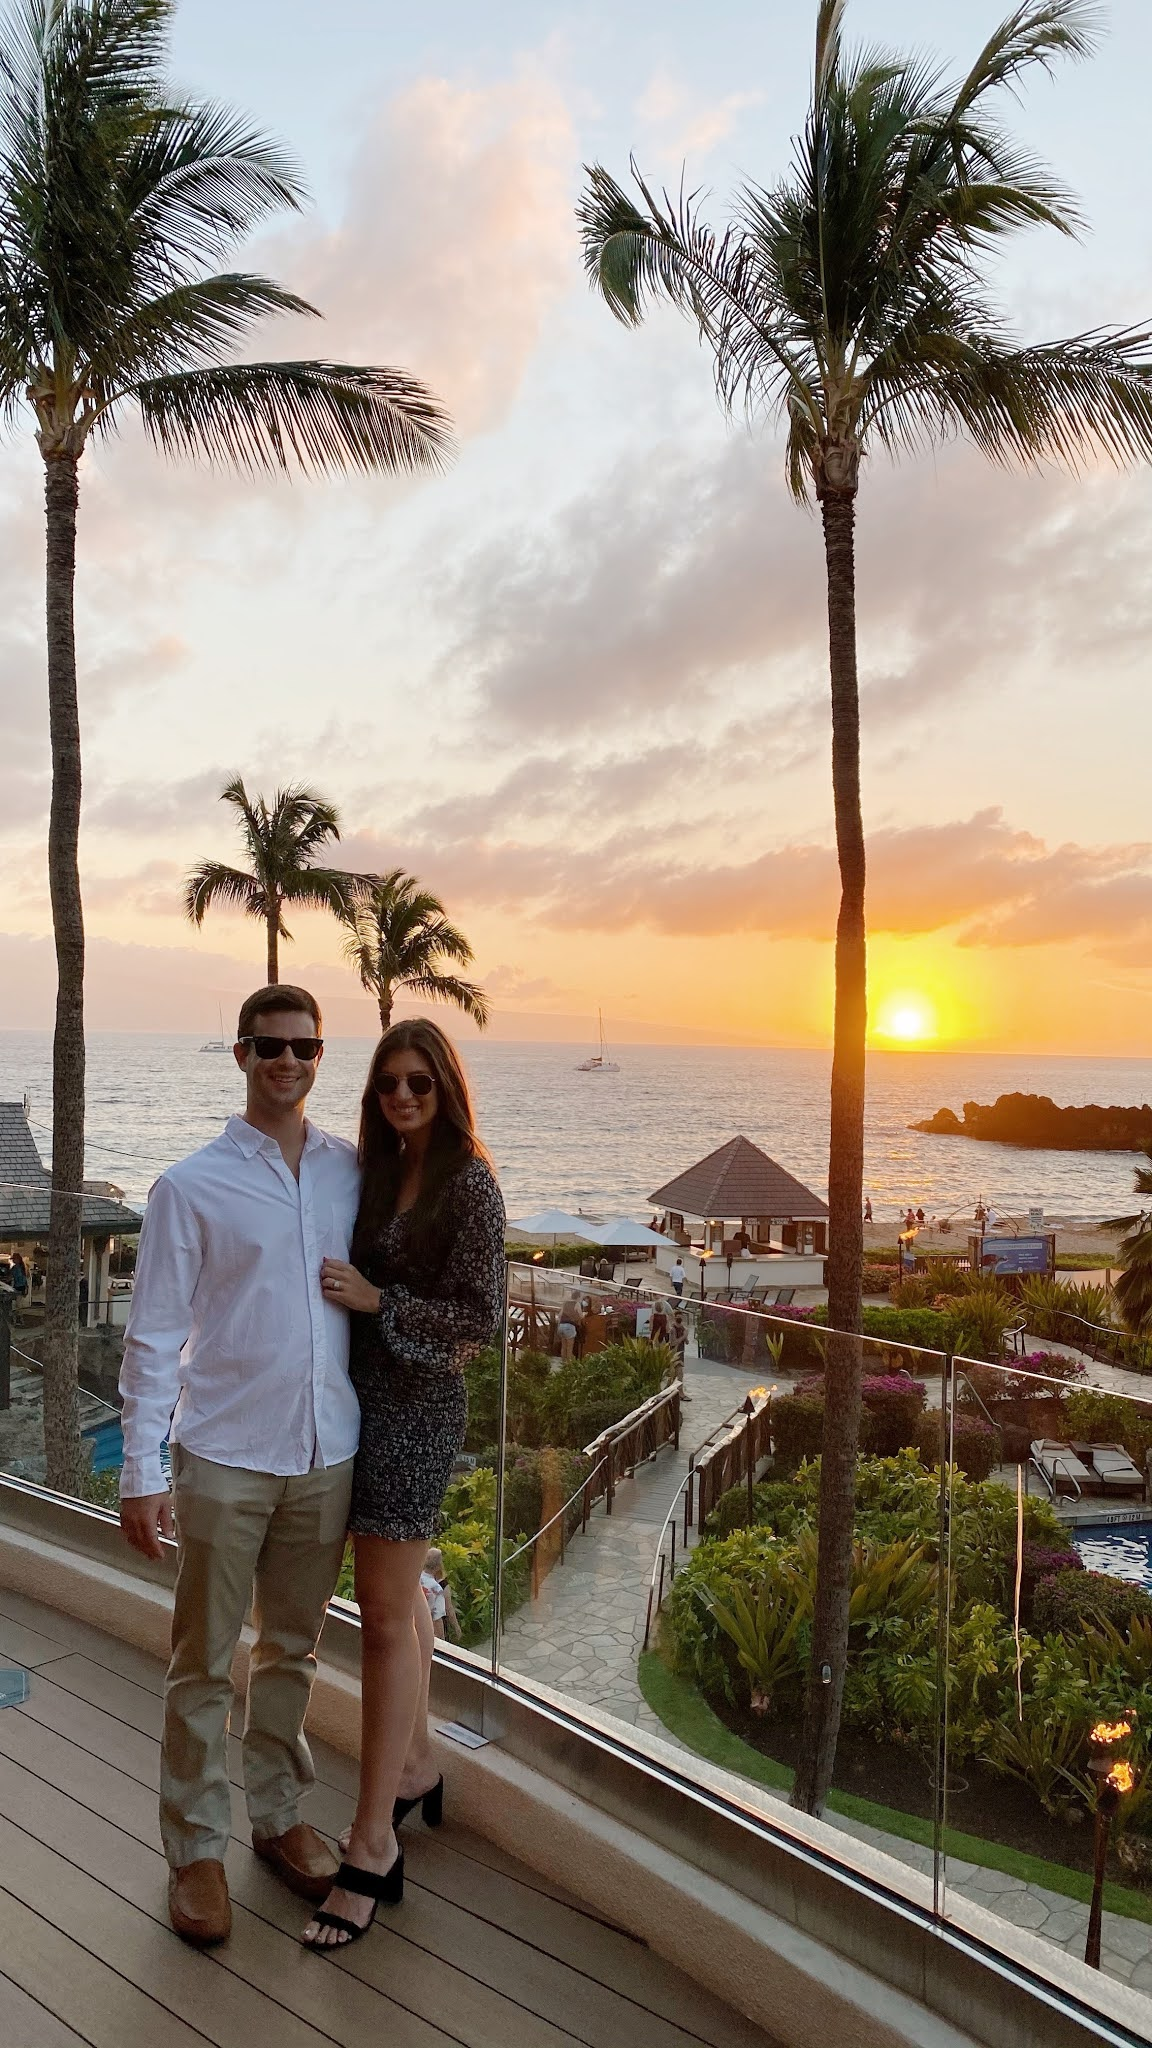 The Ultimate Travel Guide for Maui, Hawaii | Traveling to Hawaii During the Pandemic | Maui Hawaii Hikes | Best Hotels in Maui | Best Hikes in Maui | Where to Eat in Maui | Hawaii Travel Guide